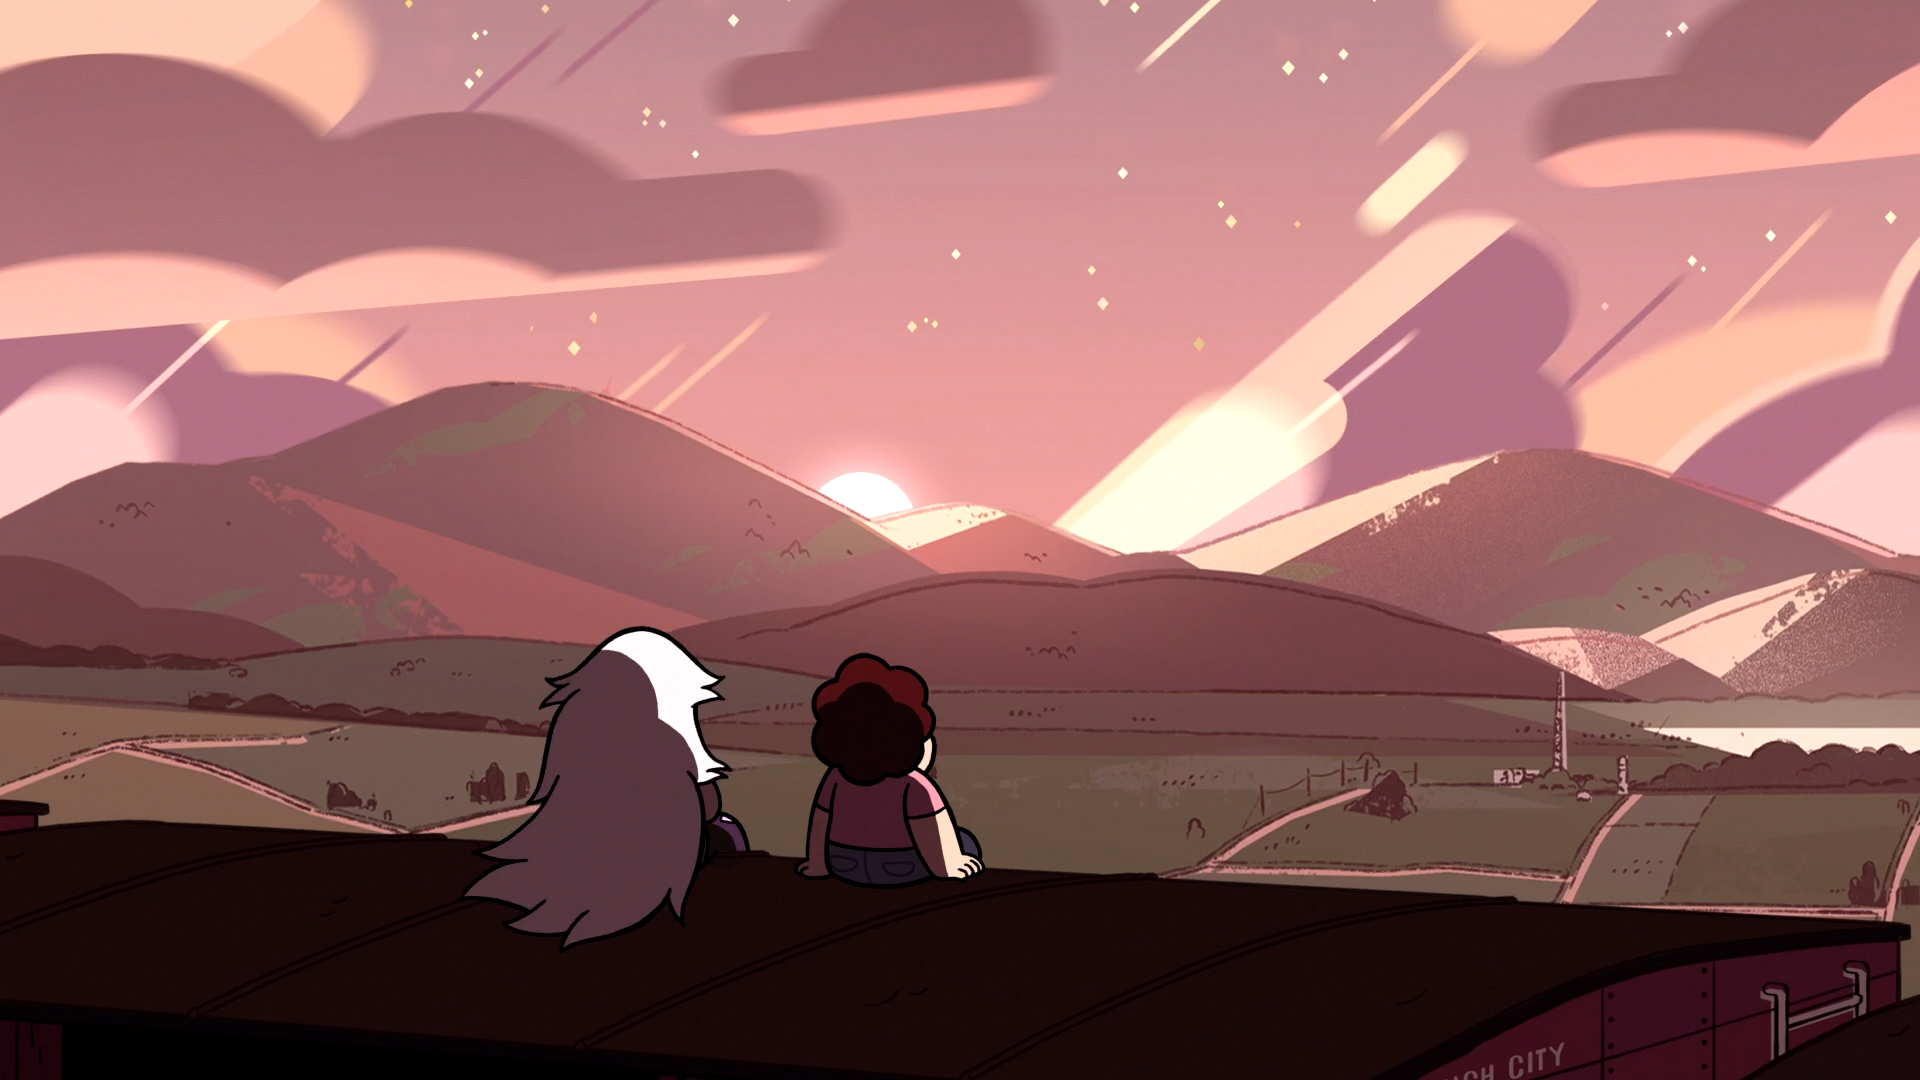 On the run hd wallpaper background image 1920x1080 - Steven universe wallpapers hd ...